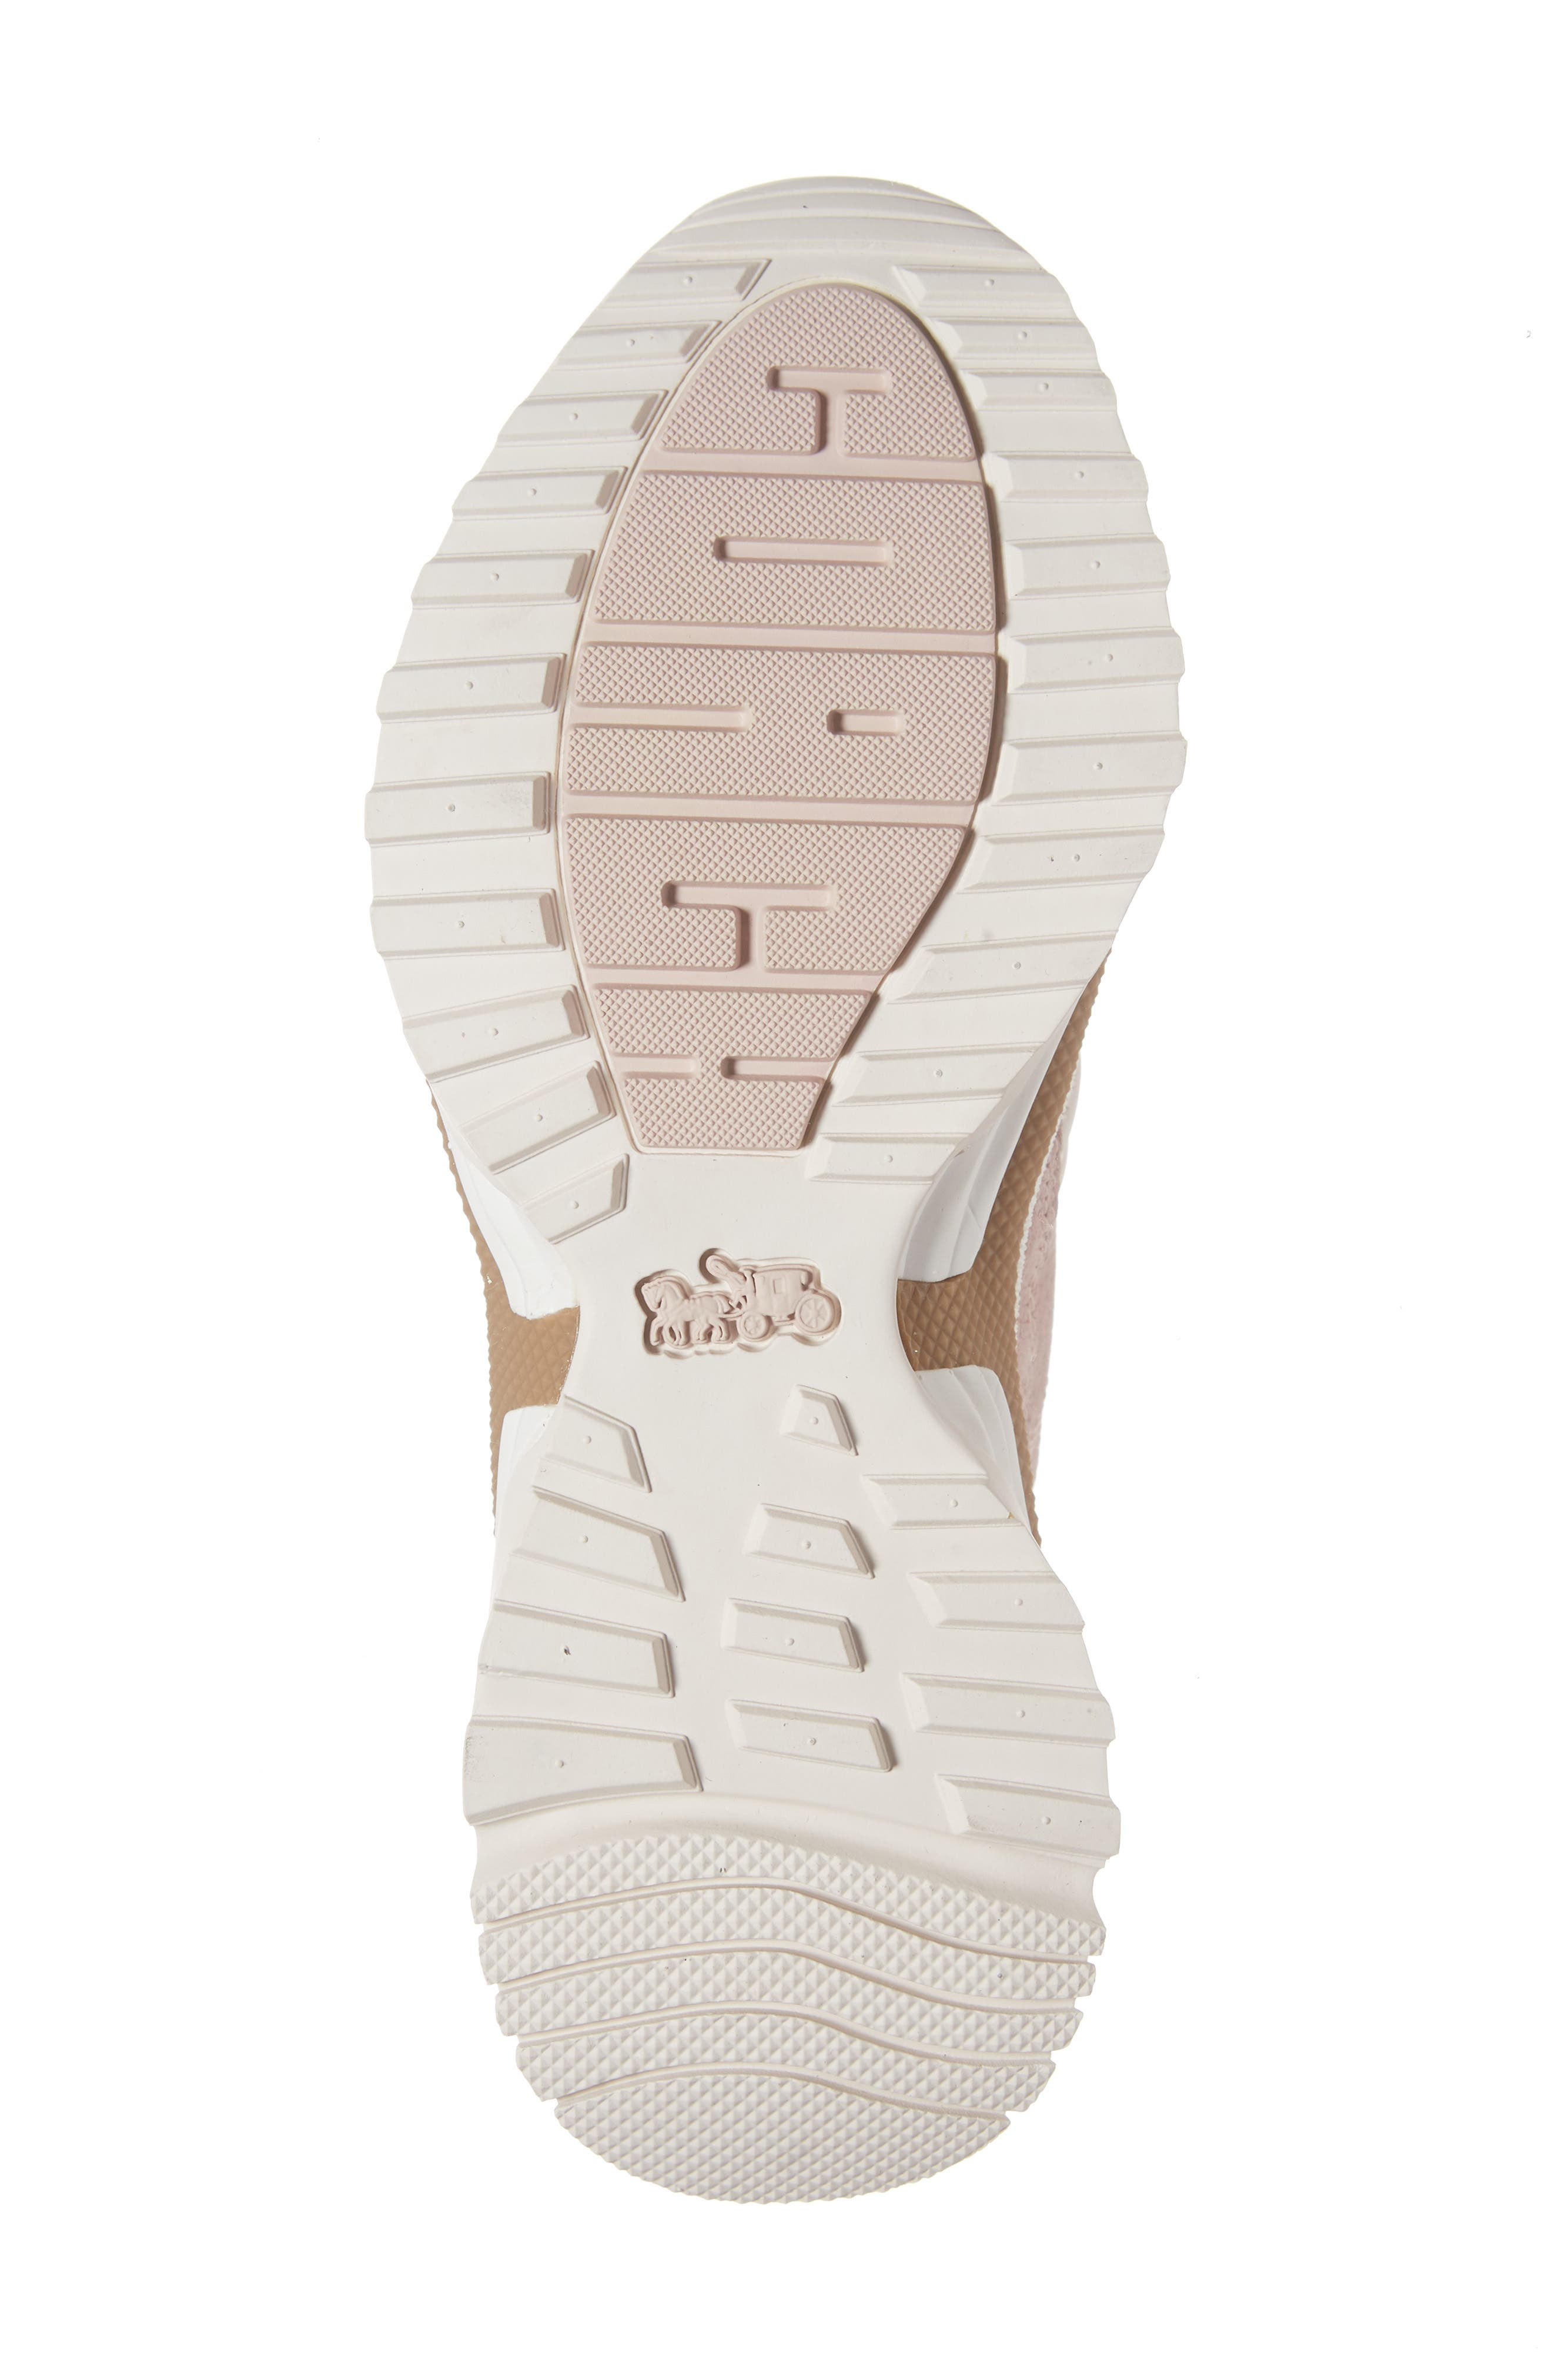 COACH,                             High Top Sneaker,                             Alternate thumbnail 6, color,                             BLUSH PINK NUBUCK LEATHER